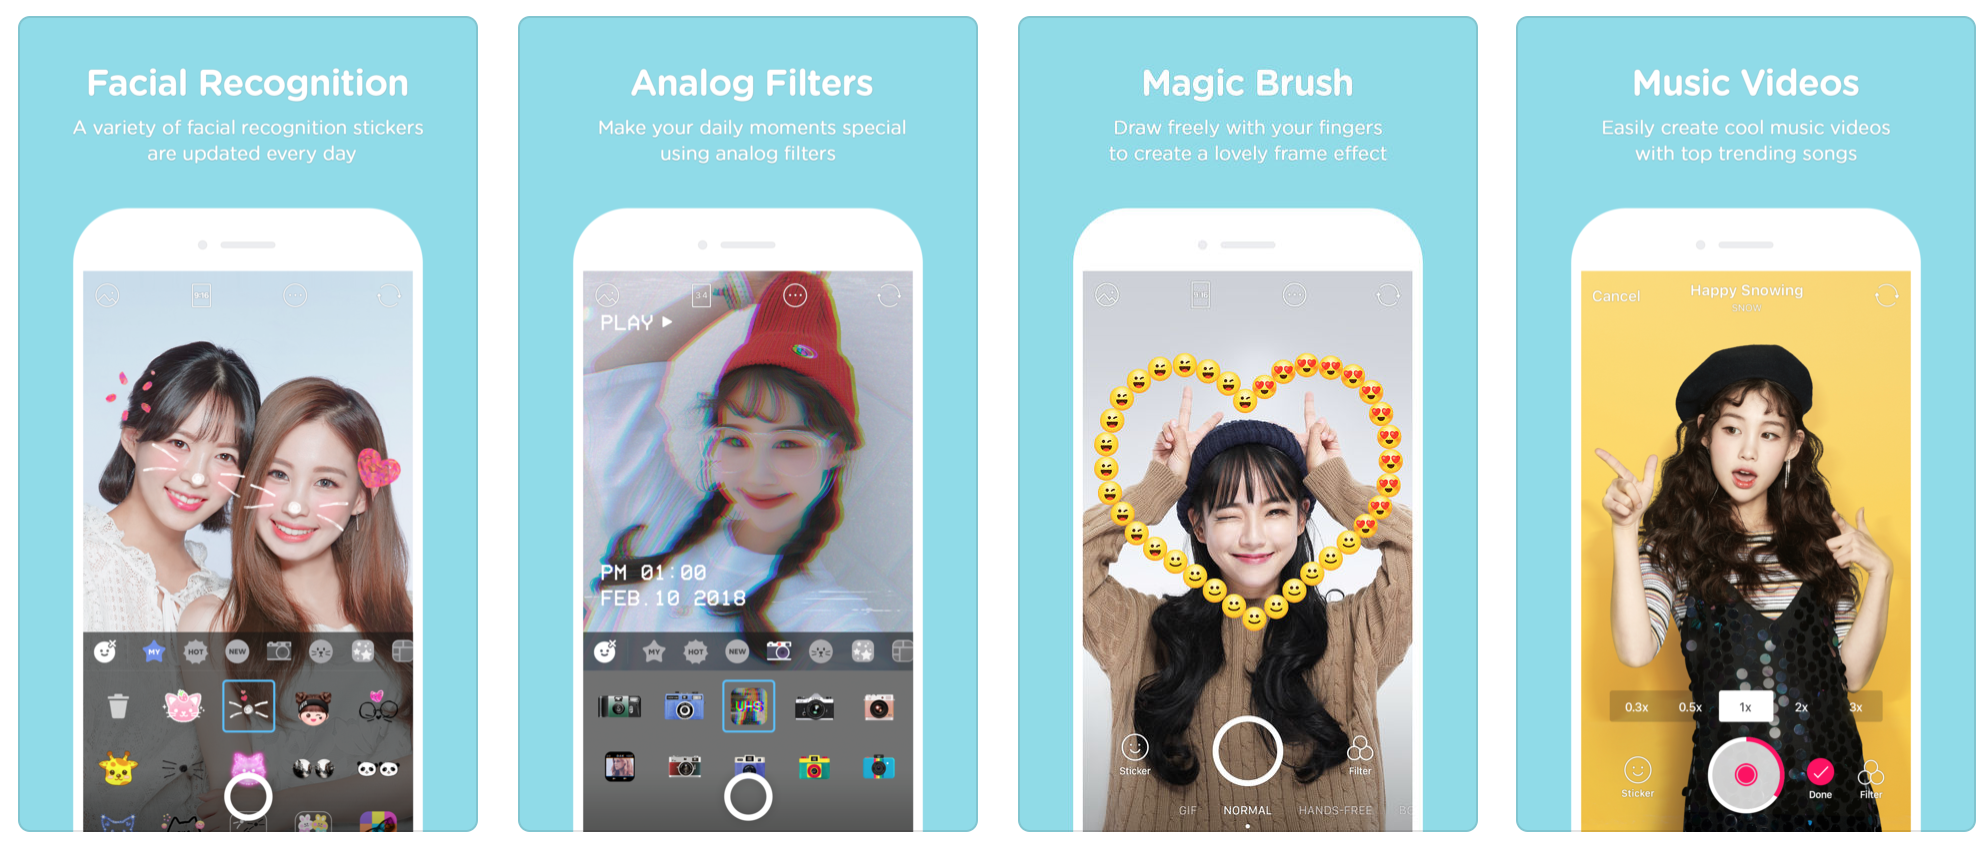 Selfie app Snow, once a Snapchat clone, raises $50M from SoftBank and Sequoia China